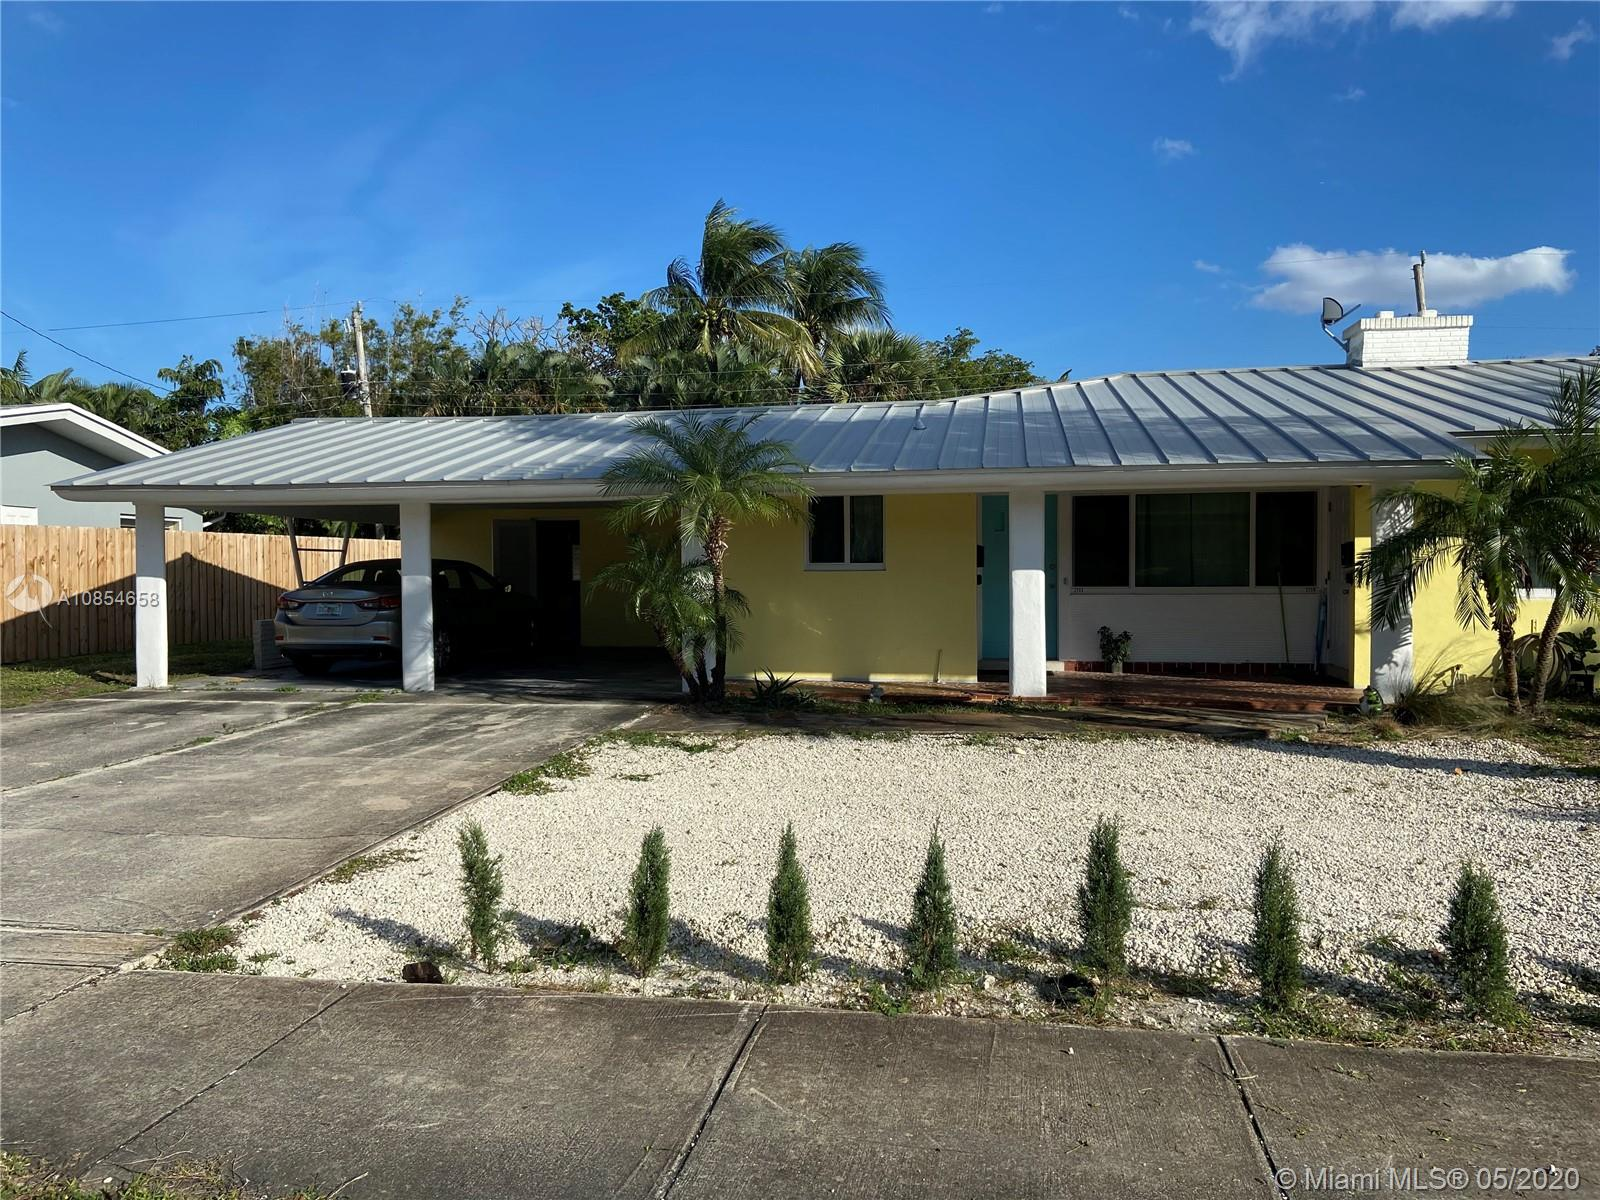 2700 Middle River Dr, Fort Lauderdale, Florida 33306, ,Residential Income,For Sale,2700 Middle River Dr,A10854658